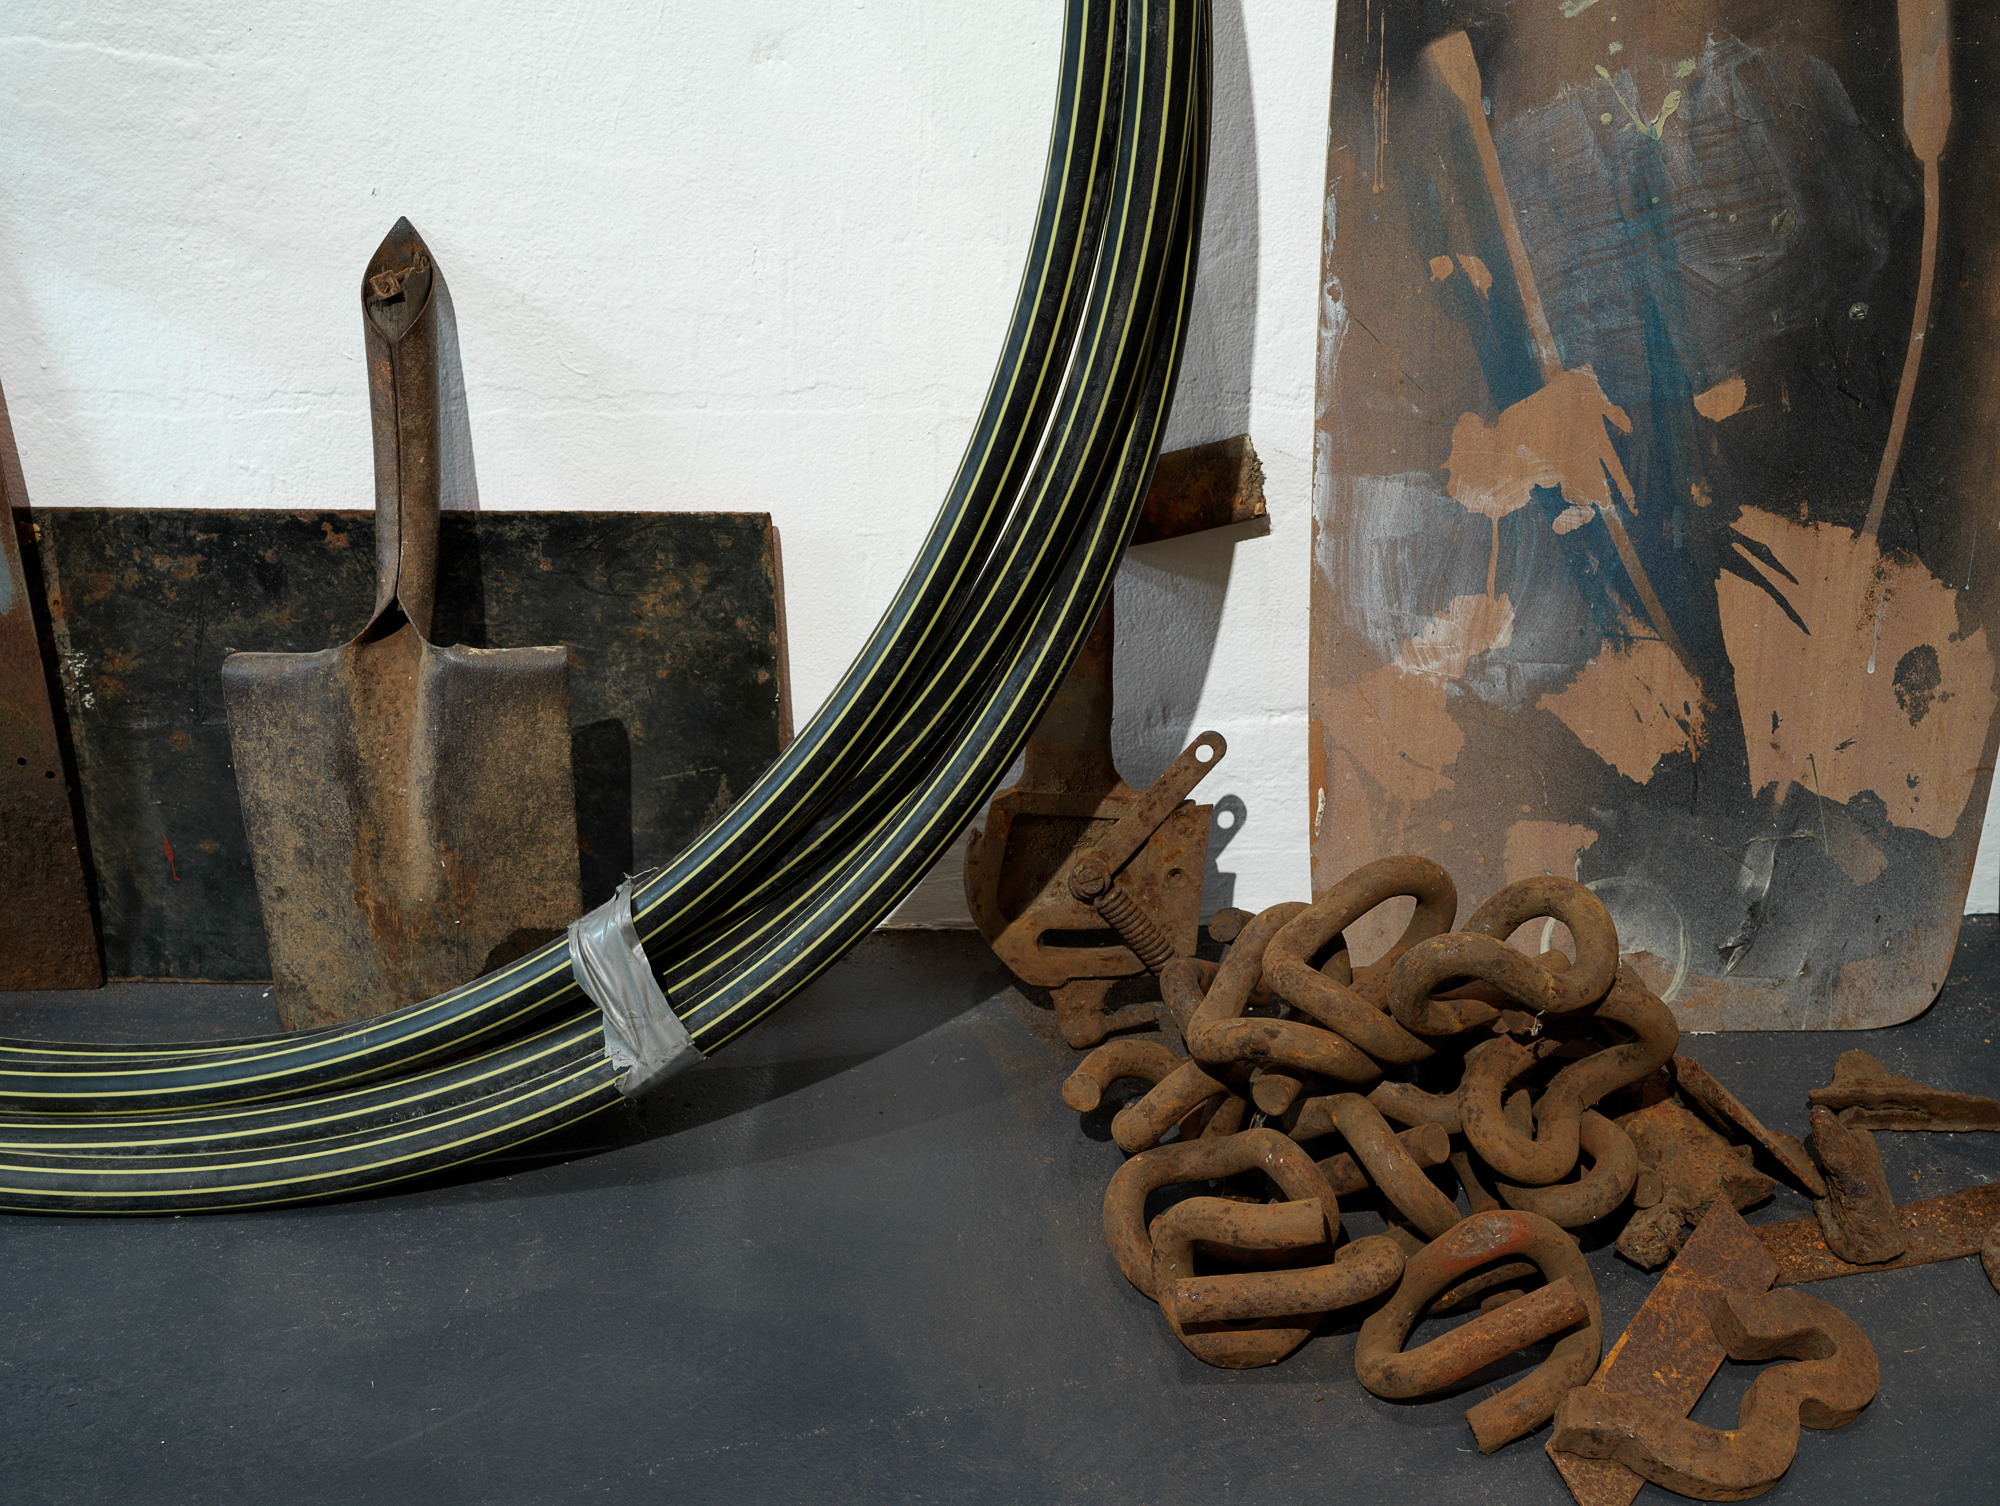 Precious Things  (detail), 2018  Metal braces, metal scoreboard numbers, length of hessian, hessian bags (various), fly wire screens, mooring rope, aged tarpaulin, metal rod with synthetic rope attached, wooden trellis, pieces of wood, awning, shovel head, copper piping, rubber gloves, windmill blades, roll of used ram board, cardboard pieces, metal frames (oven), plastic gas piping, plastic hazard stand, plastic polythene sheets, plywood, electronic component (oven), wooden stool, rusted pieces of piping, tree bark, seed pods, metal signs, telegraph insulators, local rocks, lapis lazuli, plastic (clear and opaque), studio leftovers/experiments, paint, bitumen rubber, tape, nails.  300 x 300 x 280 cm  Photograph Grant Hancock